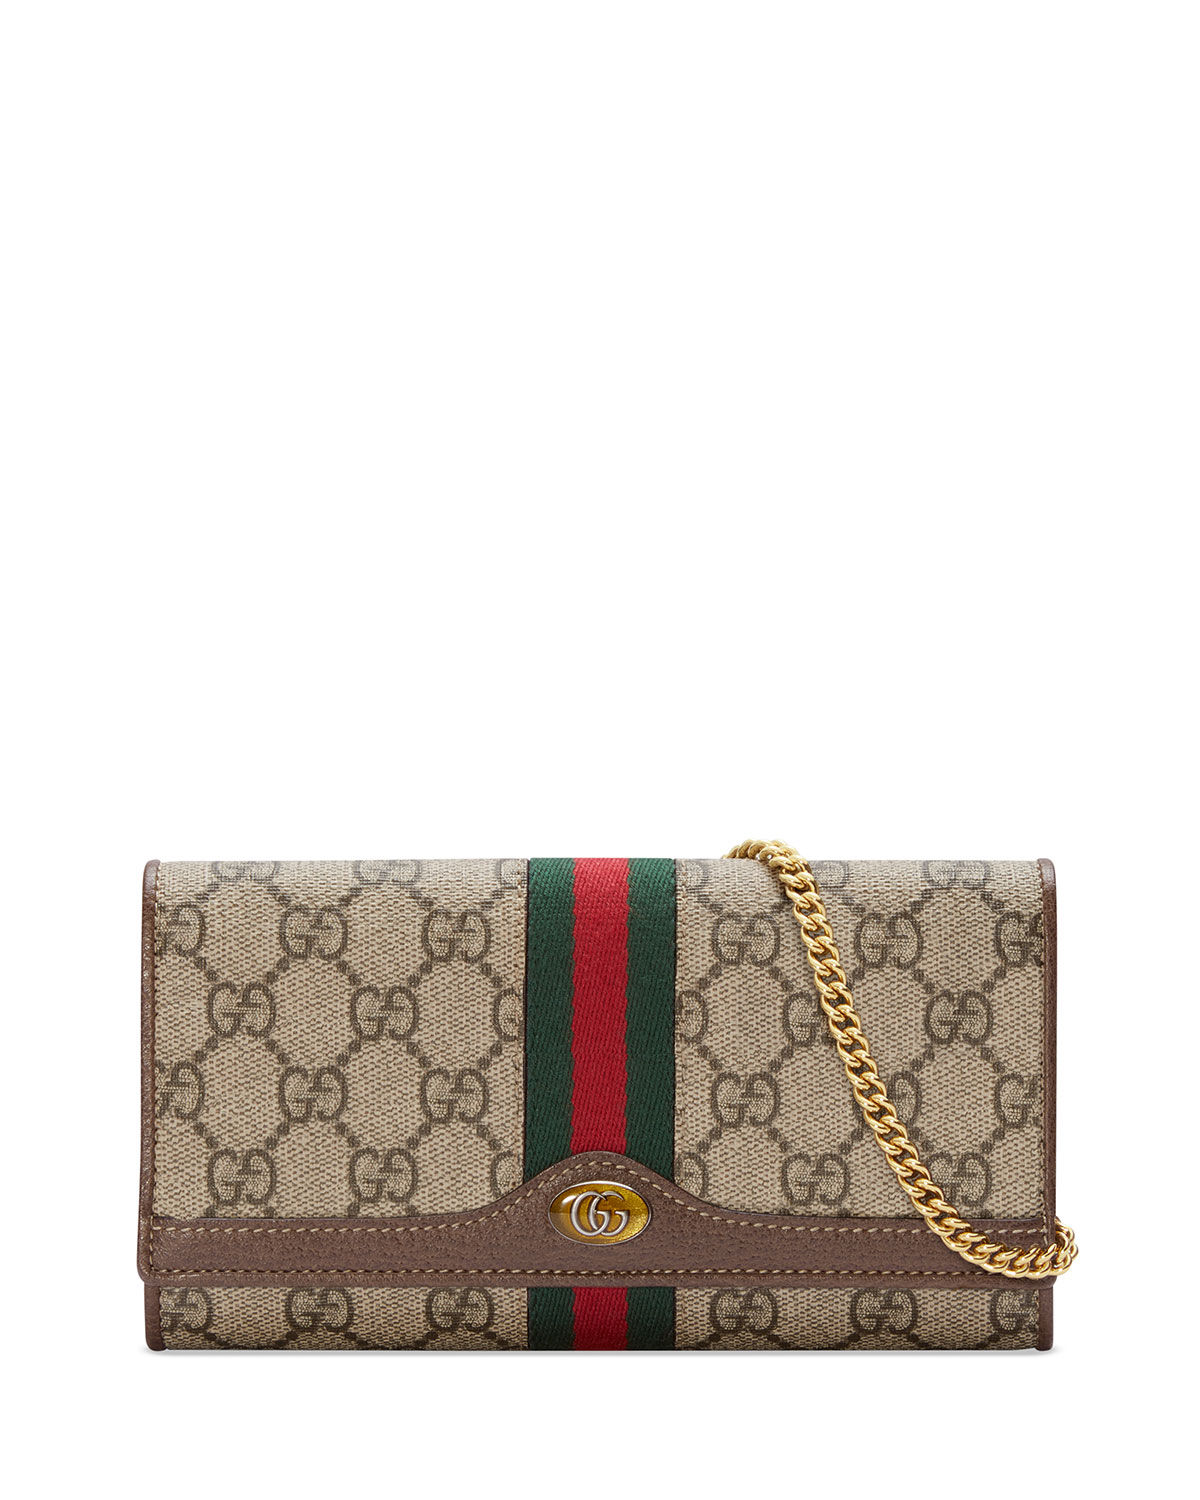 fae18012227 Gucci Ophidia Gg Supreme Canvas Flap Wallet On Chain Neiman Marcus